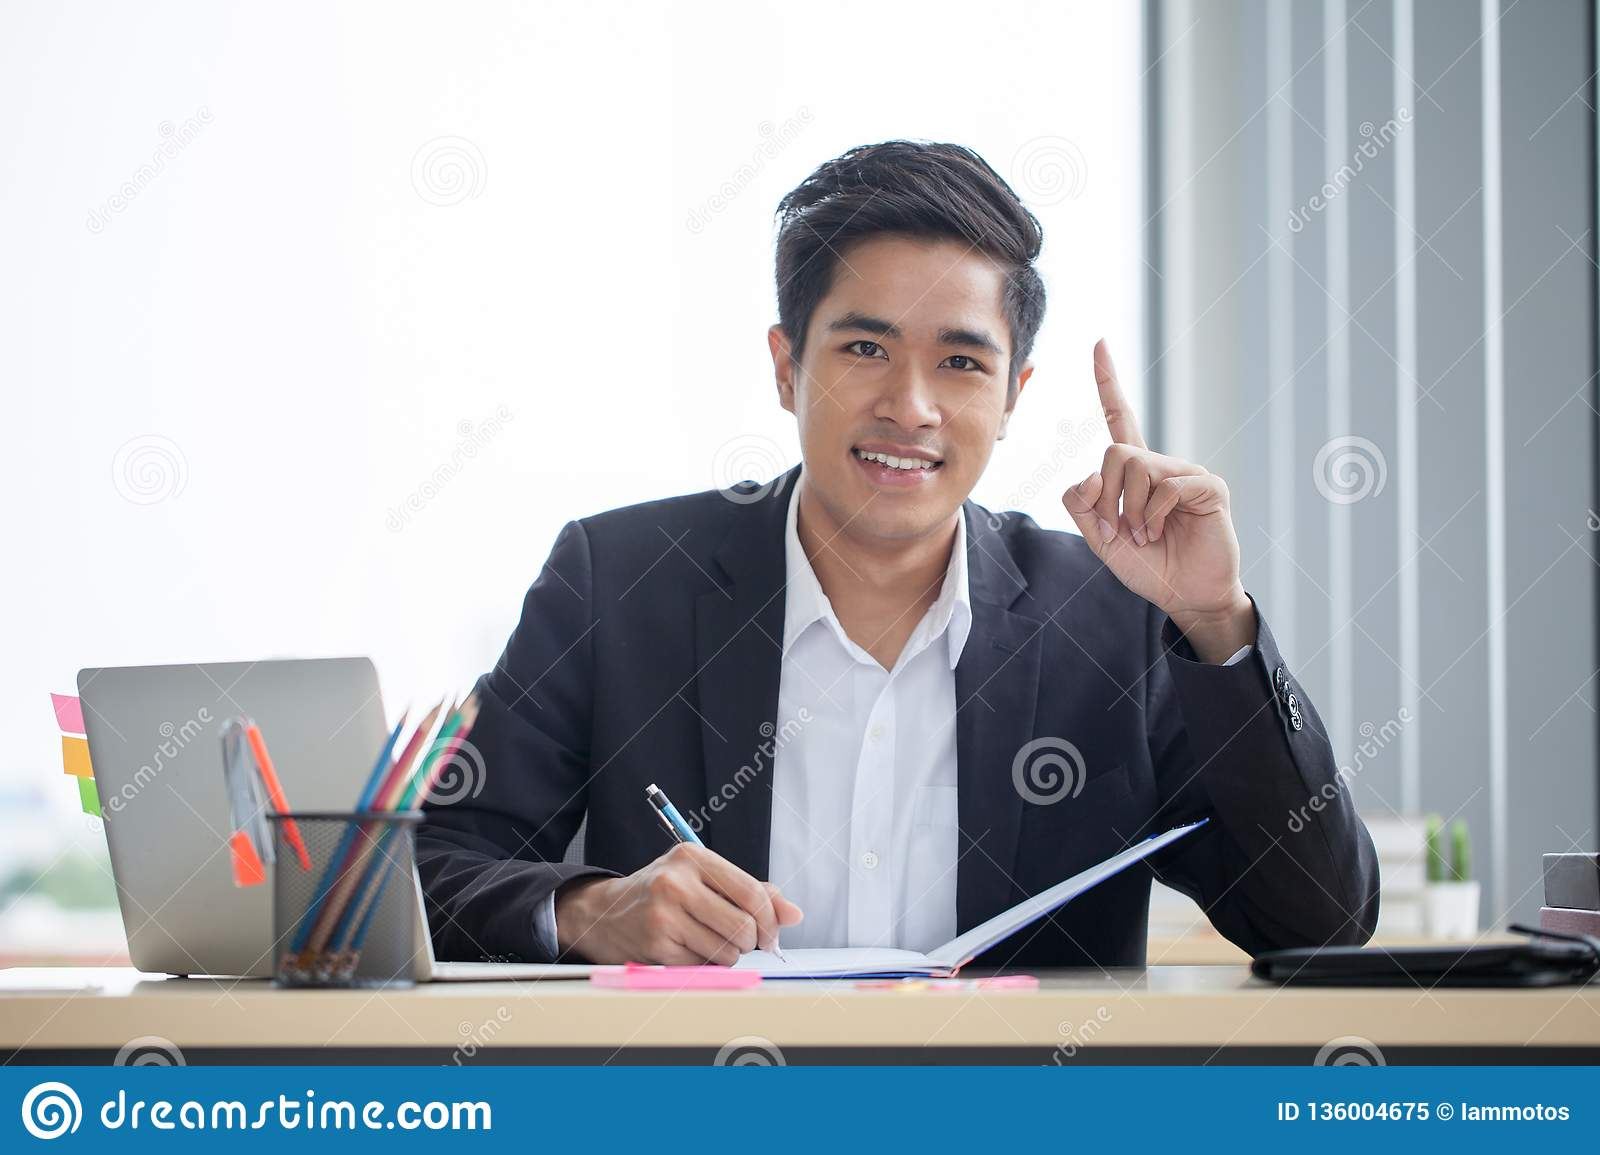 Smiling young asian business man working with note book on desk and Finger pointing up in a modern office